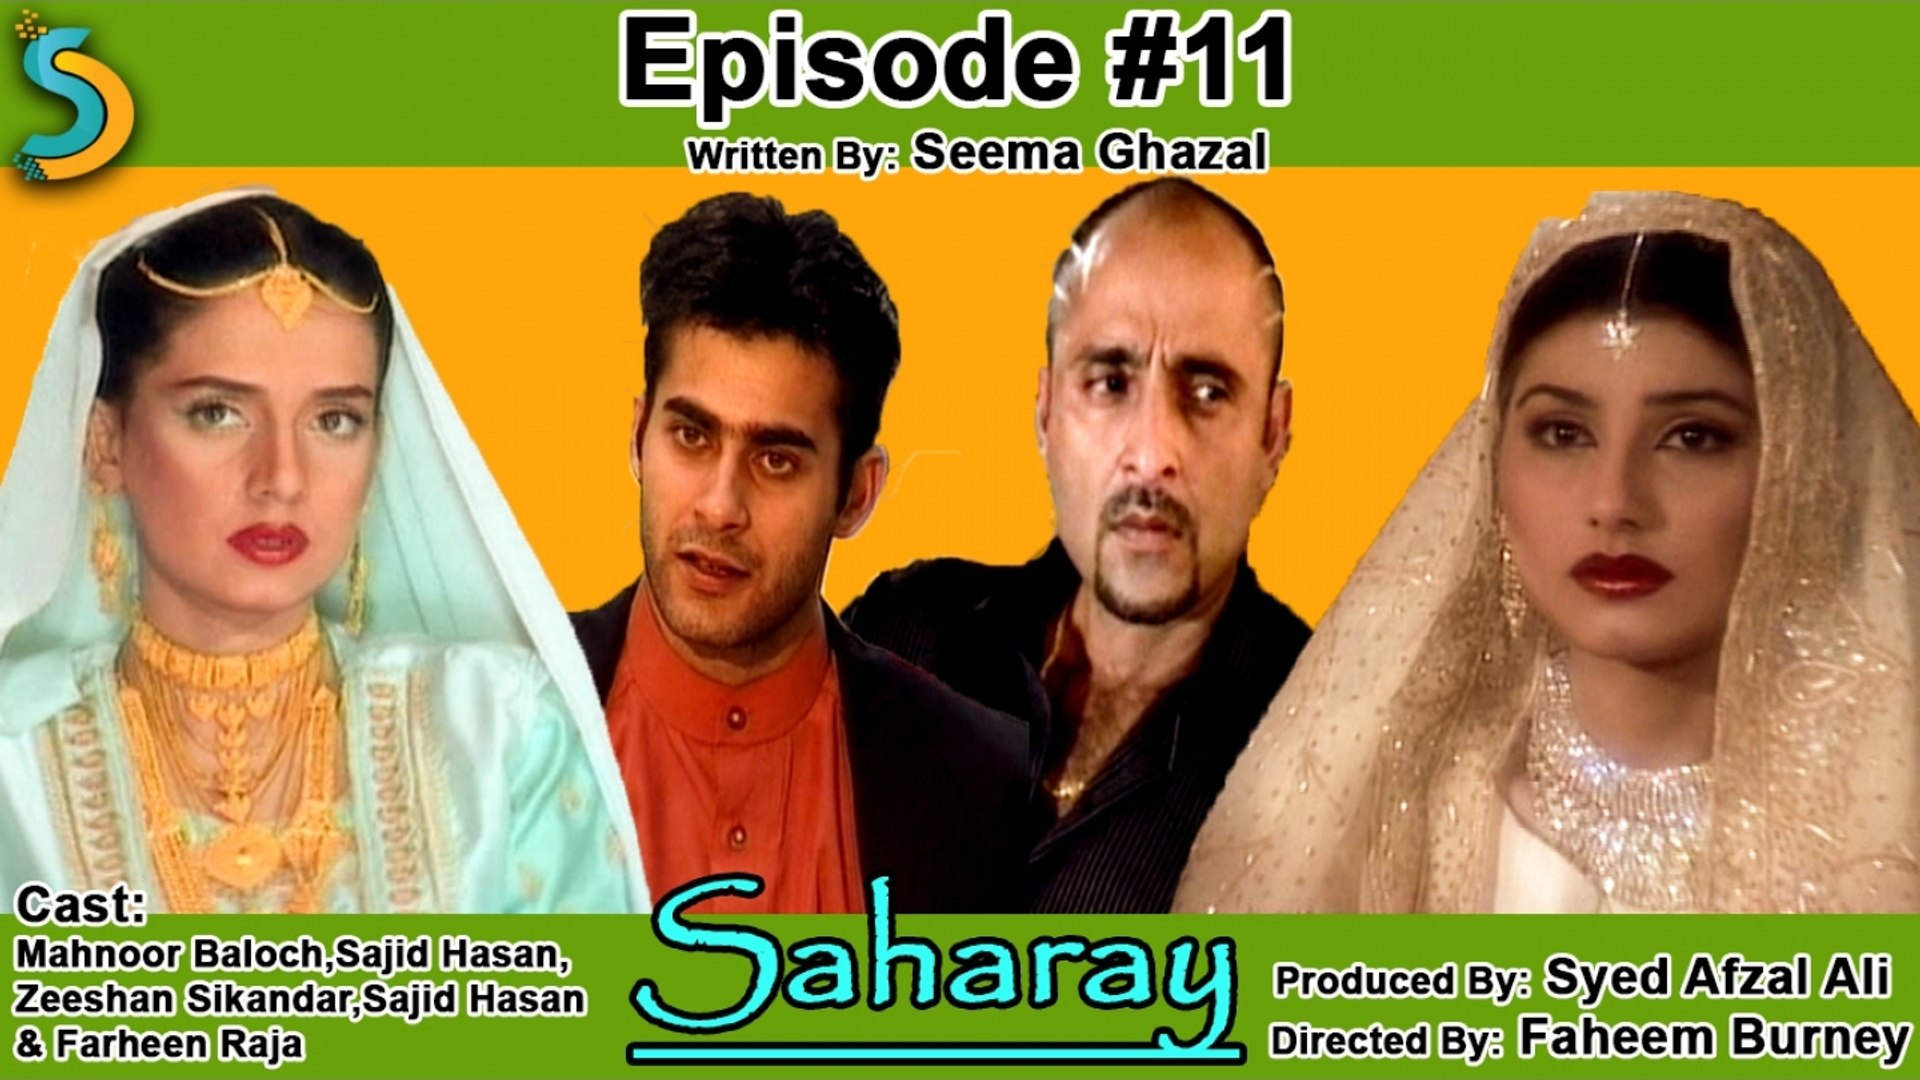 Syed Afzal Ali Ft. Sajid Hasan - Saharay Drama Serial | Episode #11